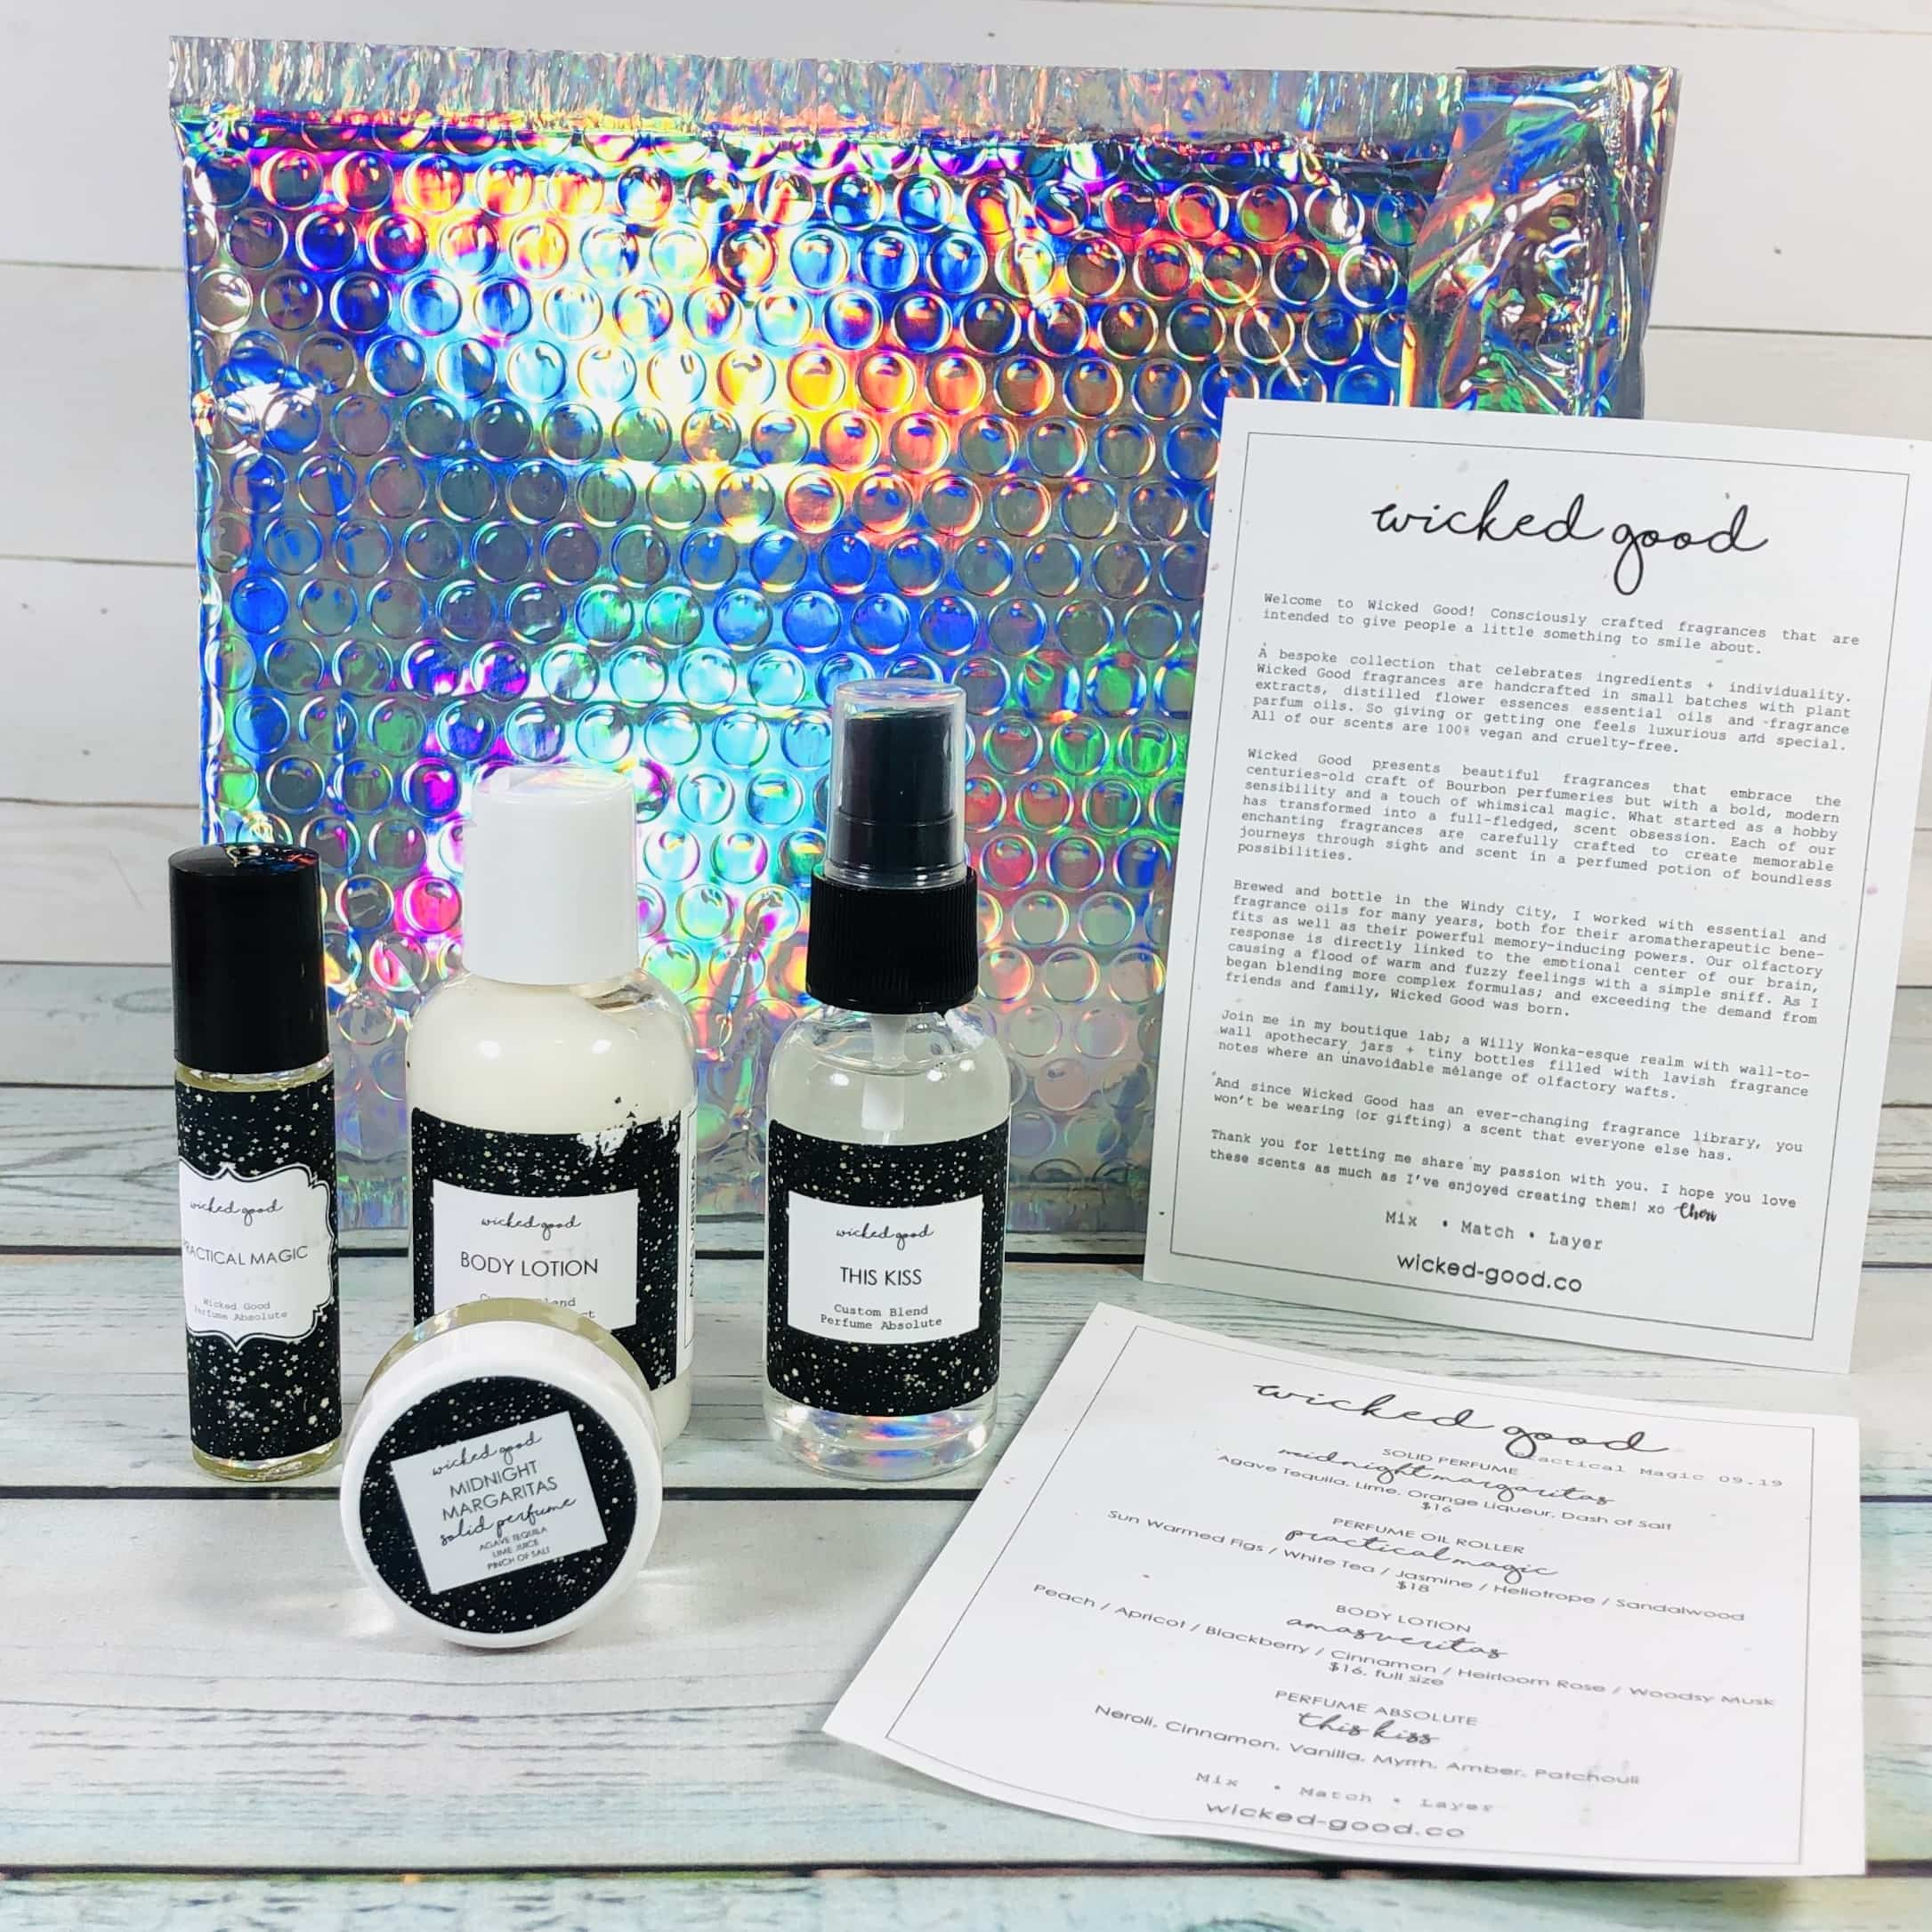 Wicked Good Perfume September 2019 Subscription Box Review